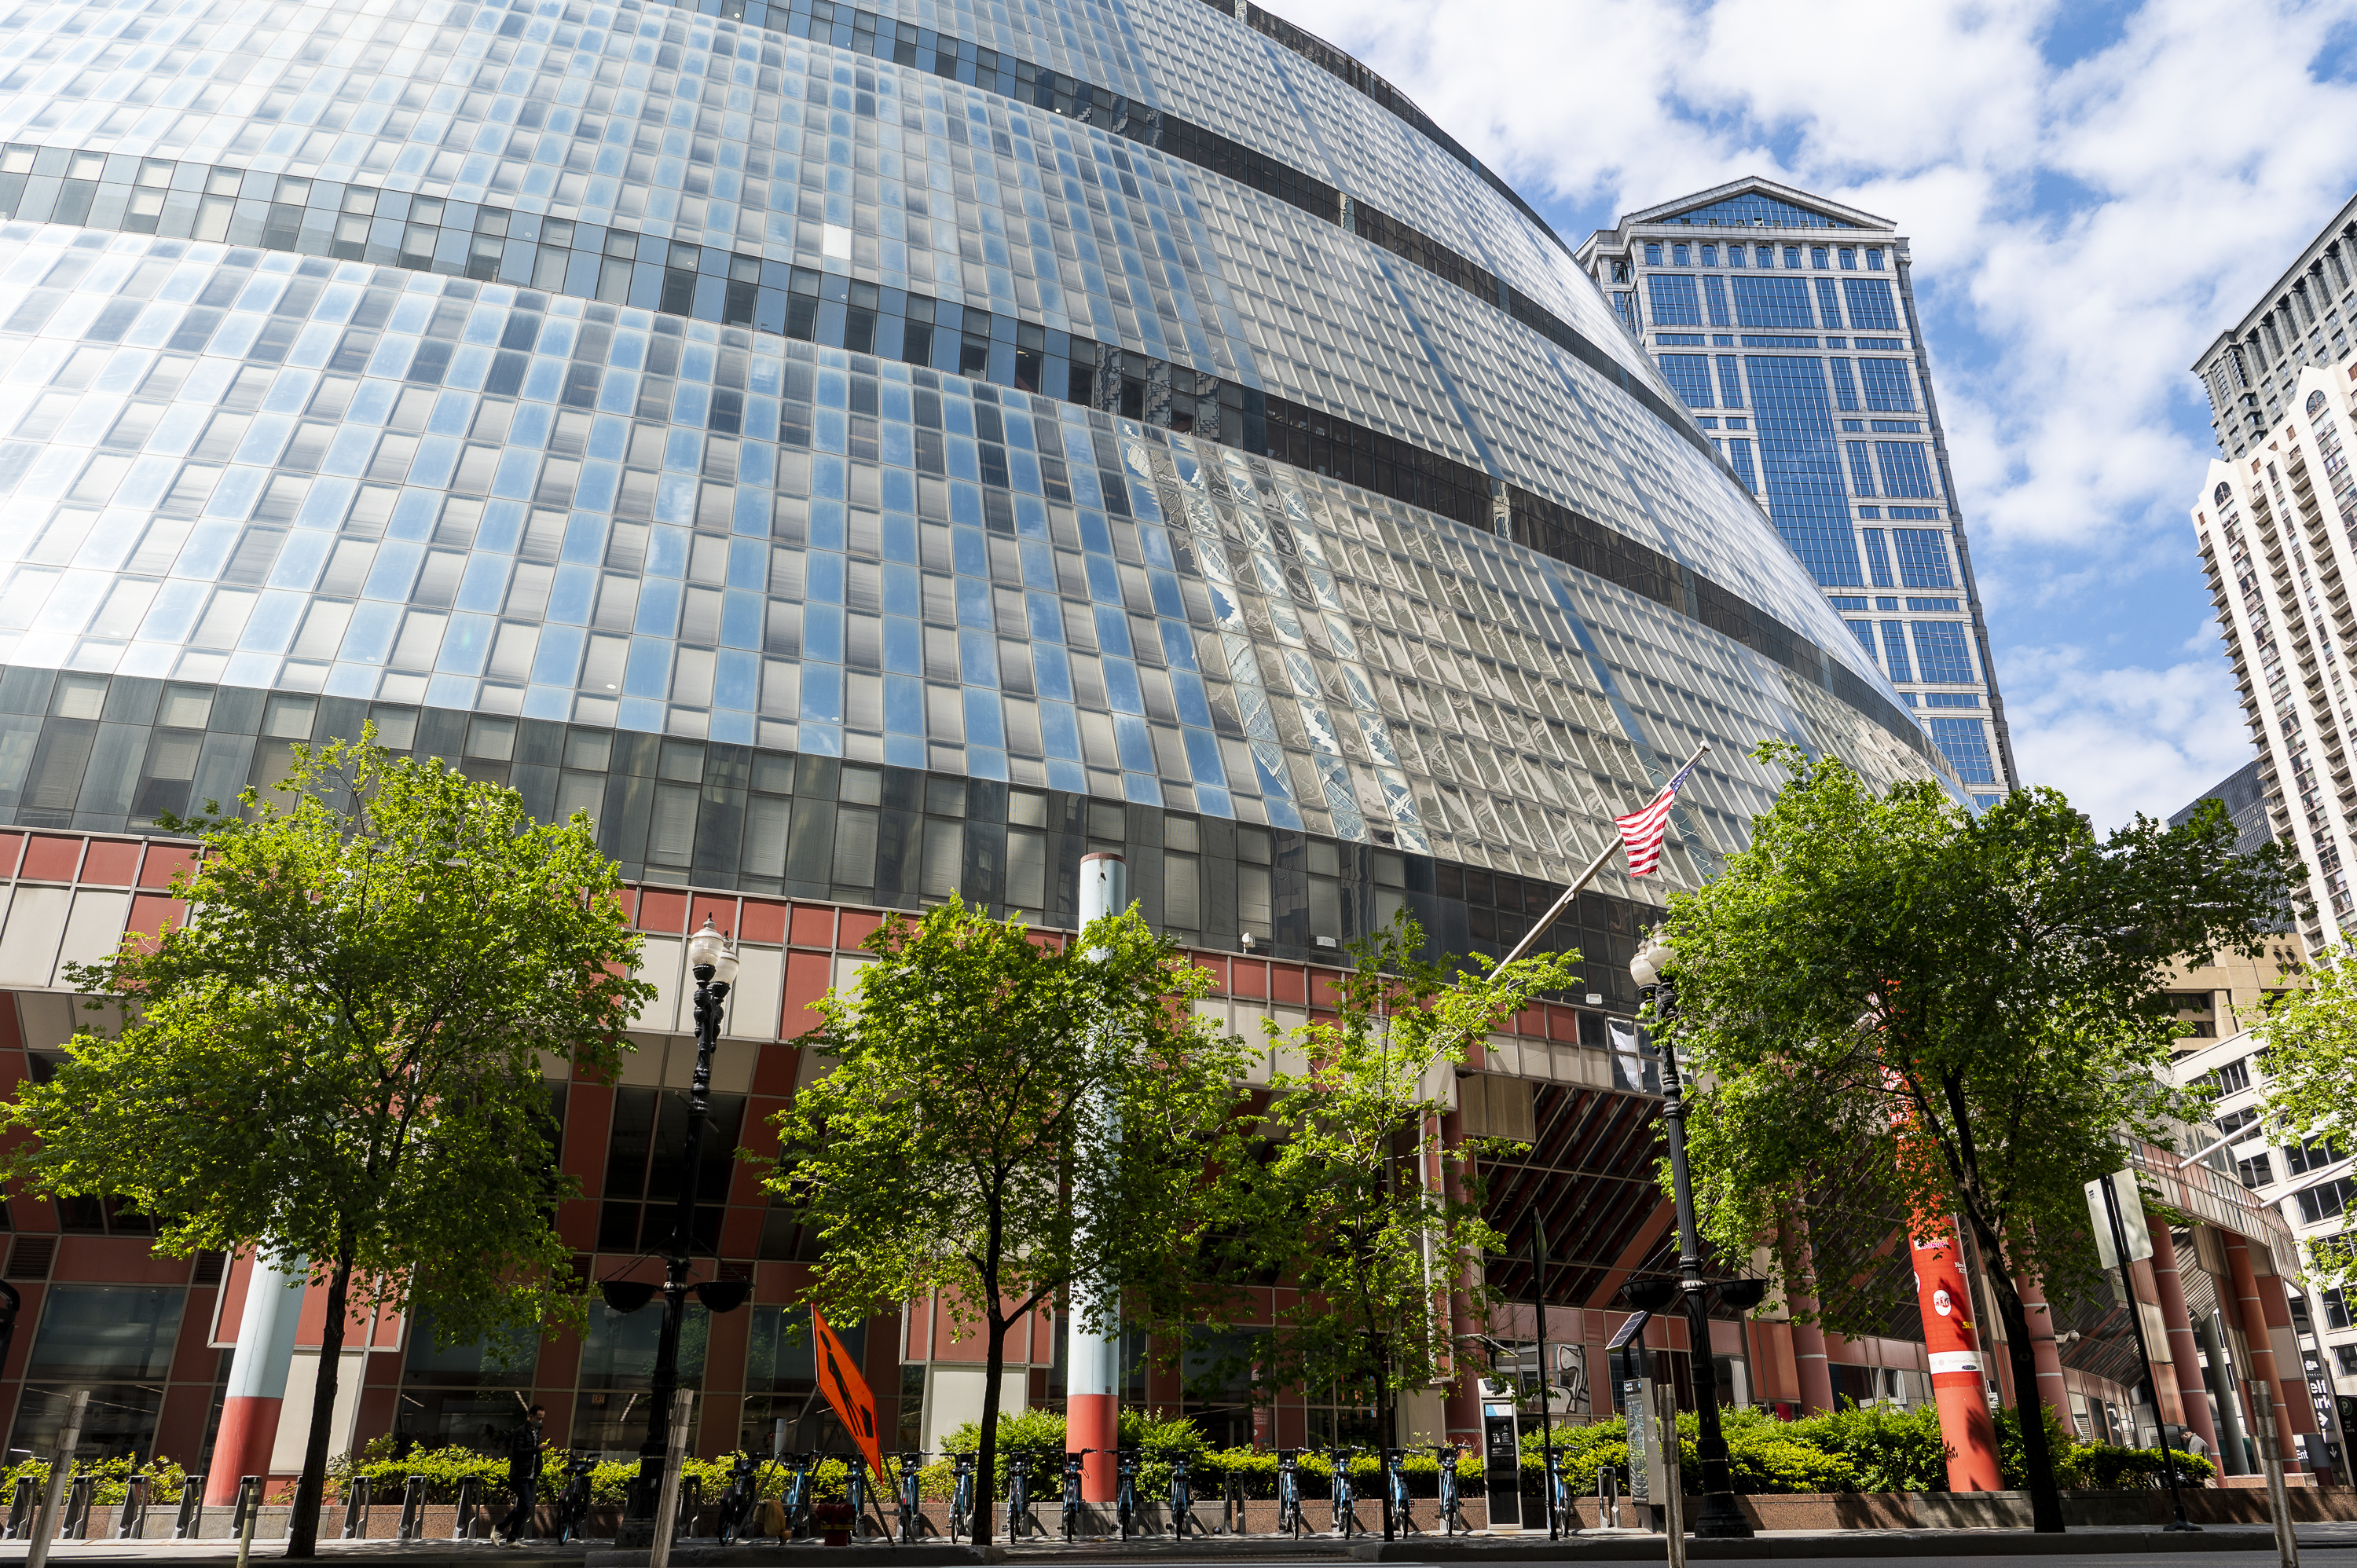 Helmut Jahn's James R. Thompson Center, 100 W. Randolph St., should be nominated for the National Register of Historic Places, a state panel said Friday.